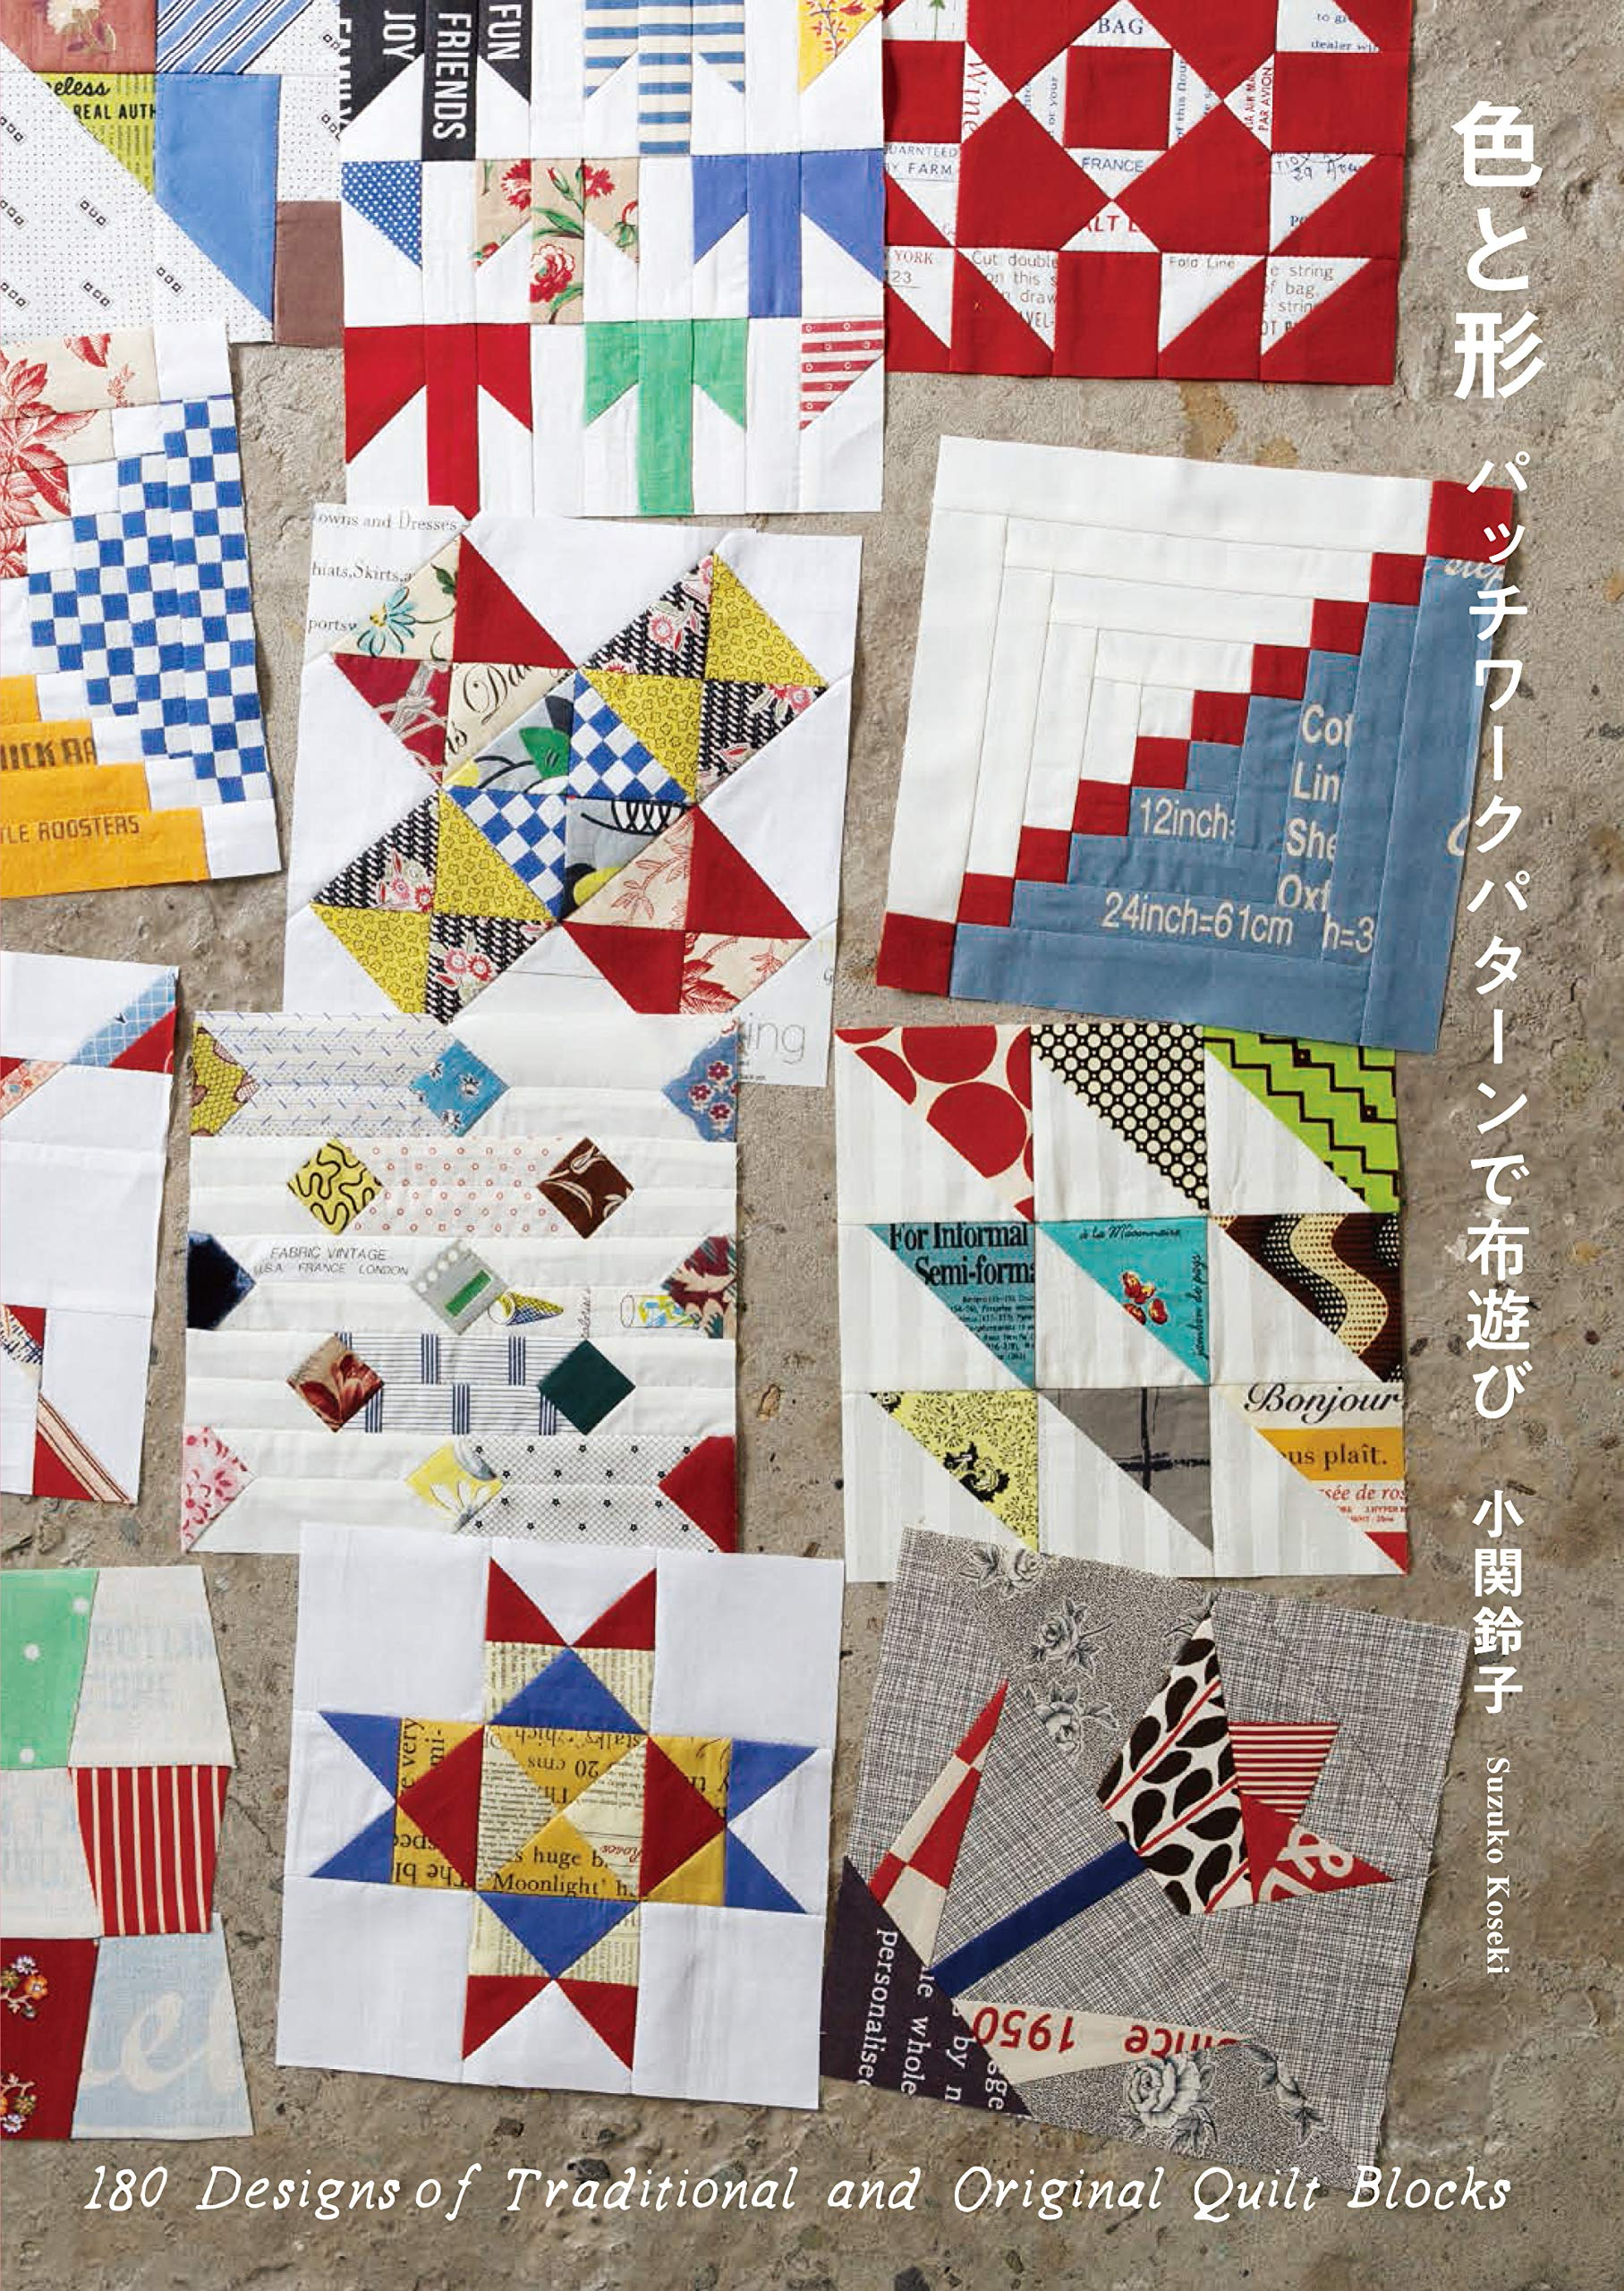 Colors and Shapes Playing with Cloth with Patchwork Pattern